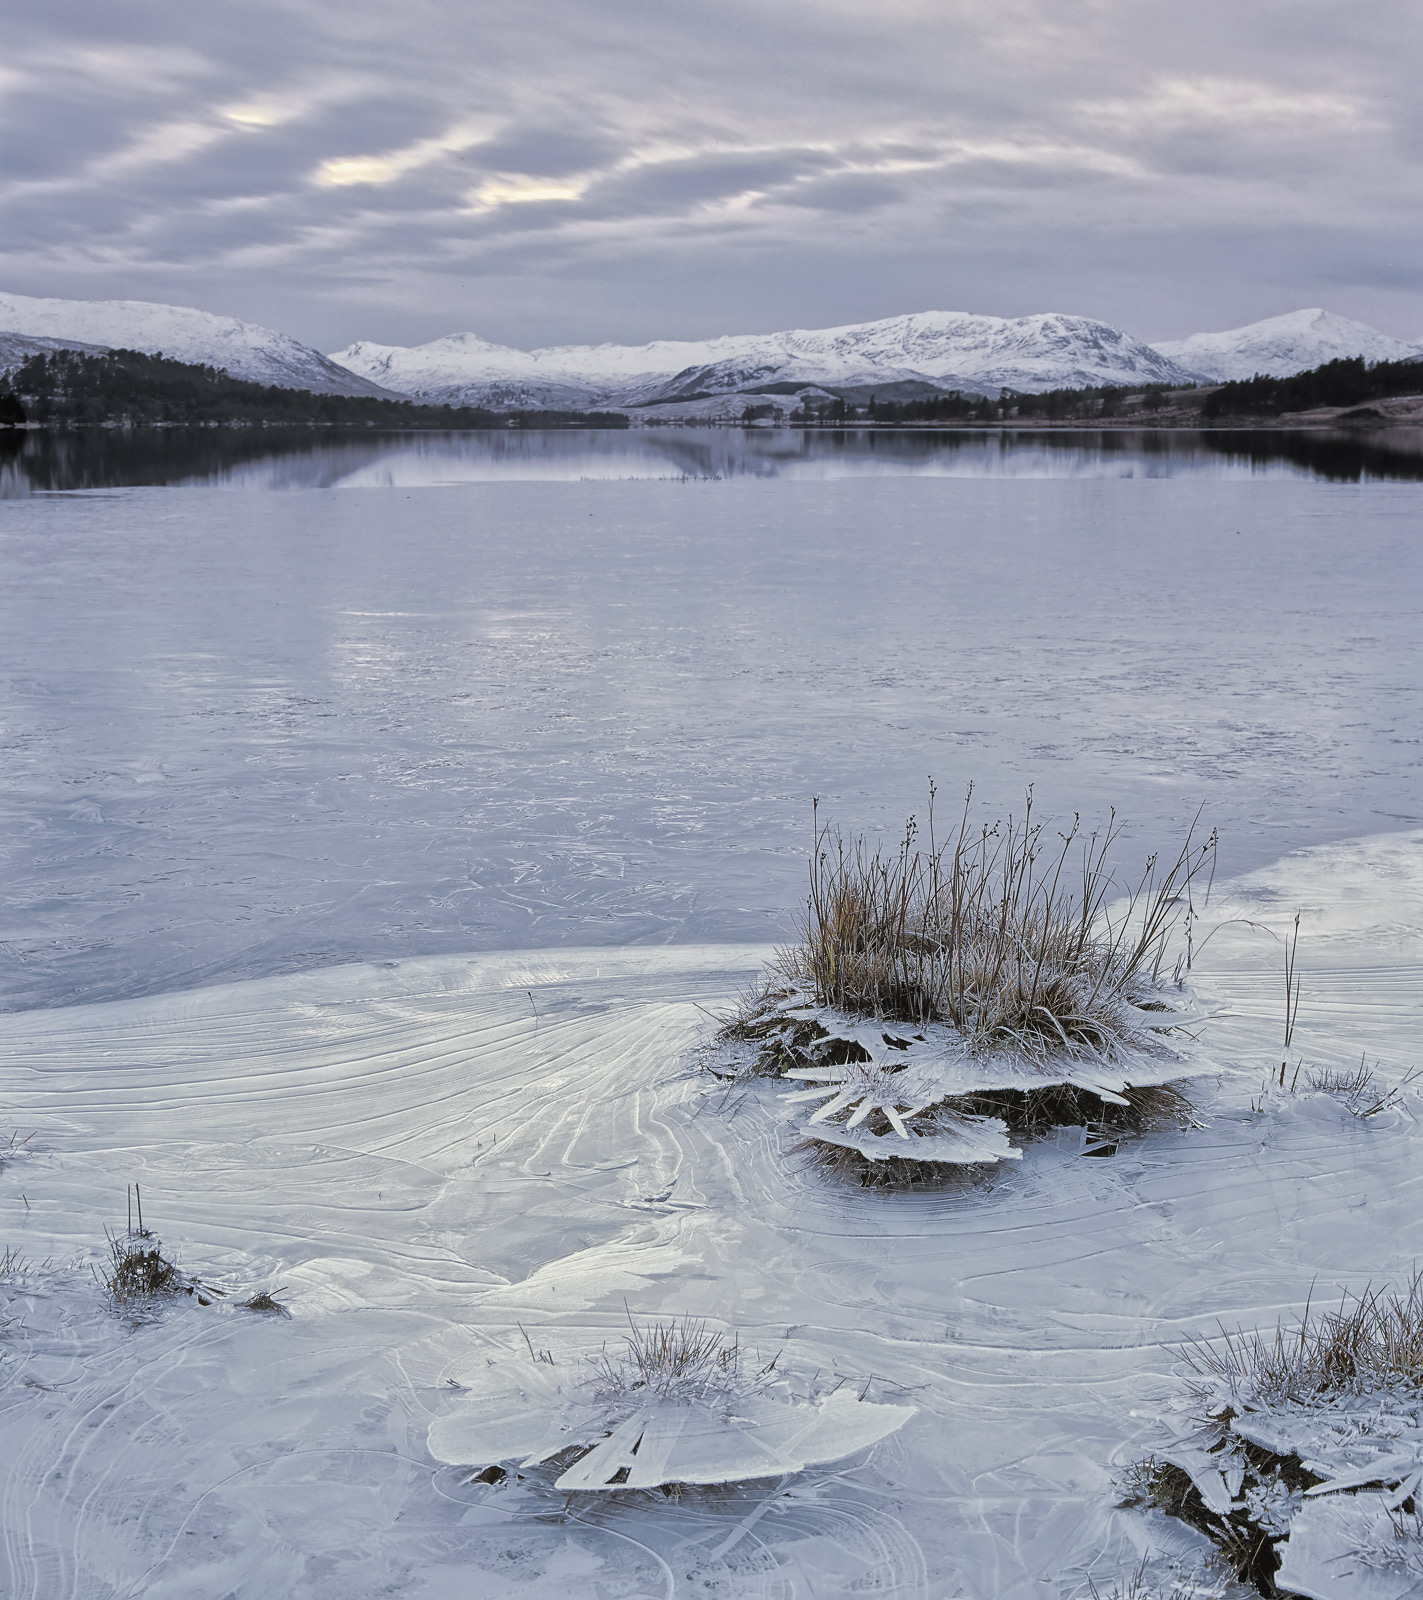 Loch Tulla had completely frozen over almost to the trees on the far side of the loch but clearly the water level had changed...